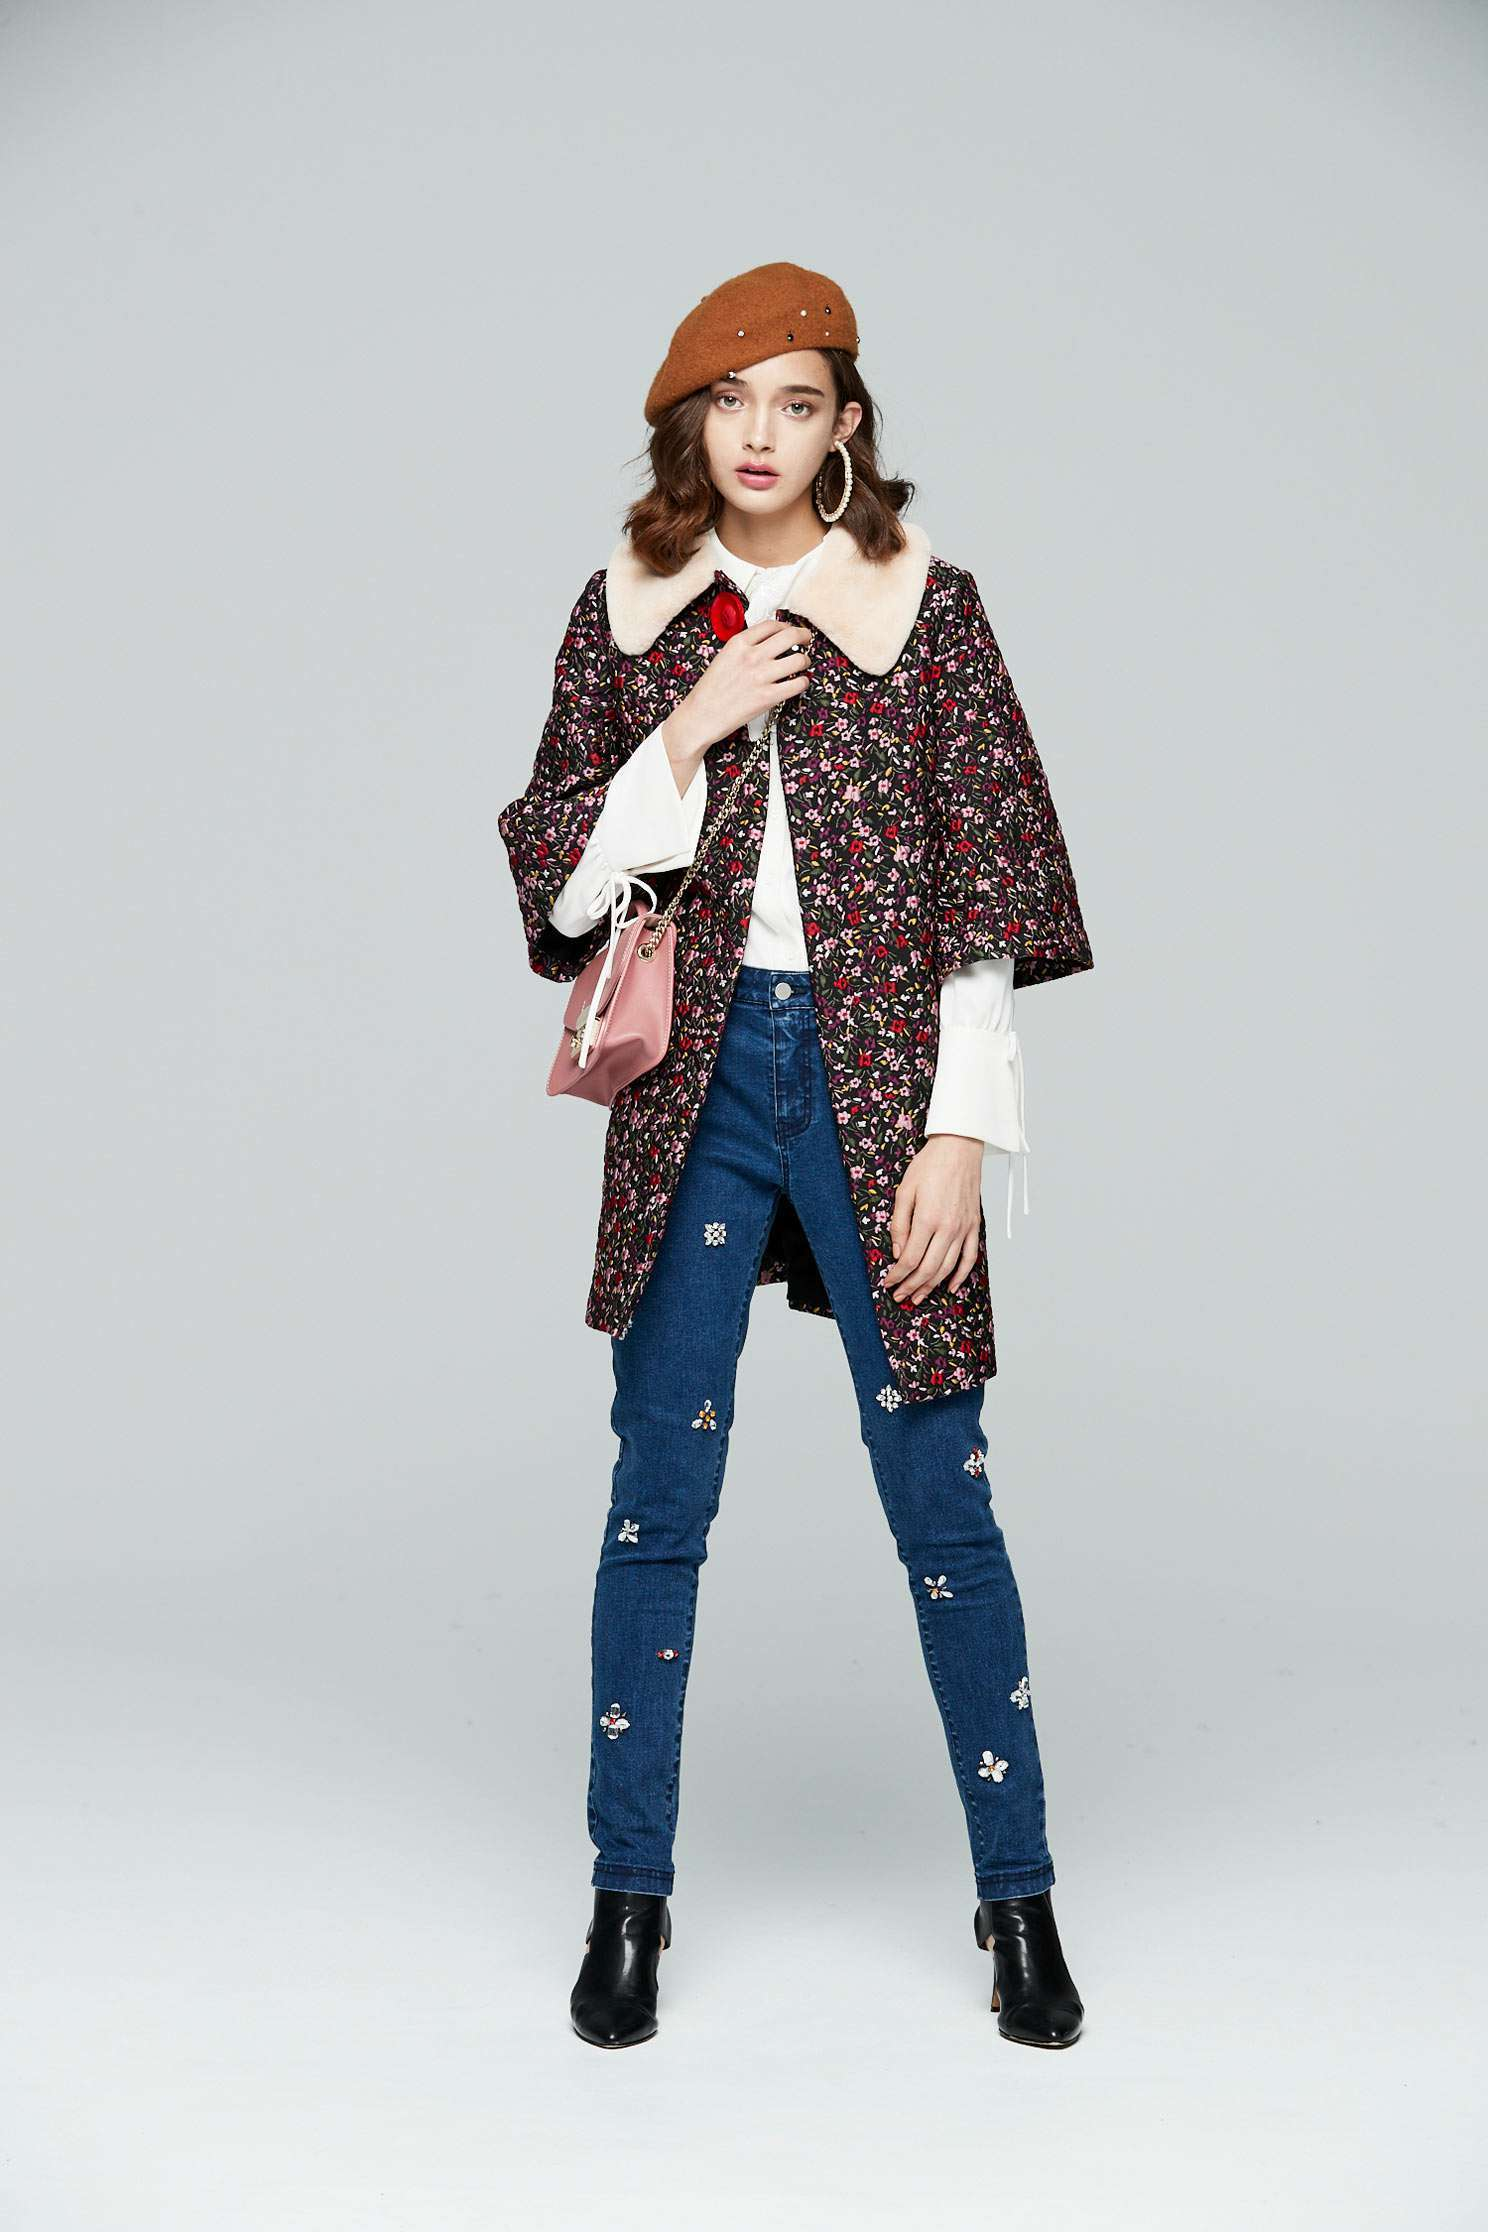 Retro floral totem elbow-length sleeve outwear jacket,embroidery,outerwear,embroidered,longcoat,longsleeveouterwear